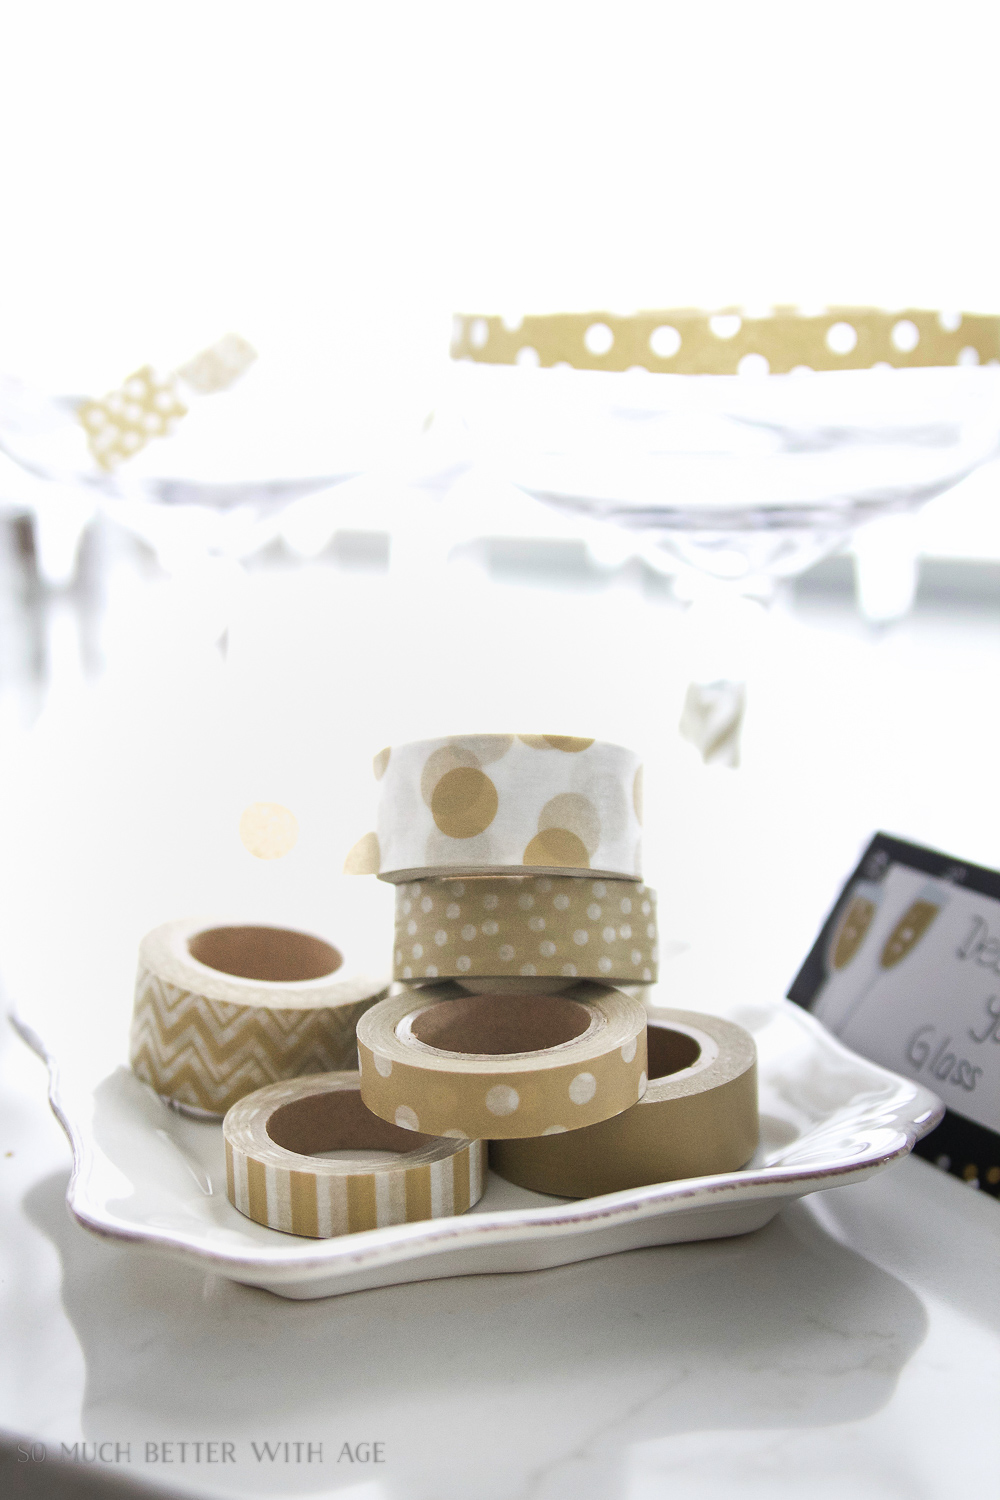 Decorate your glass with washi tape - A New Year's Eve Party Bubbly Bar with Party Tips